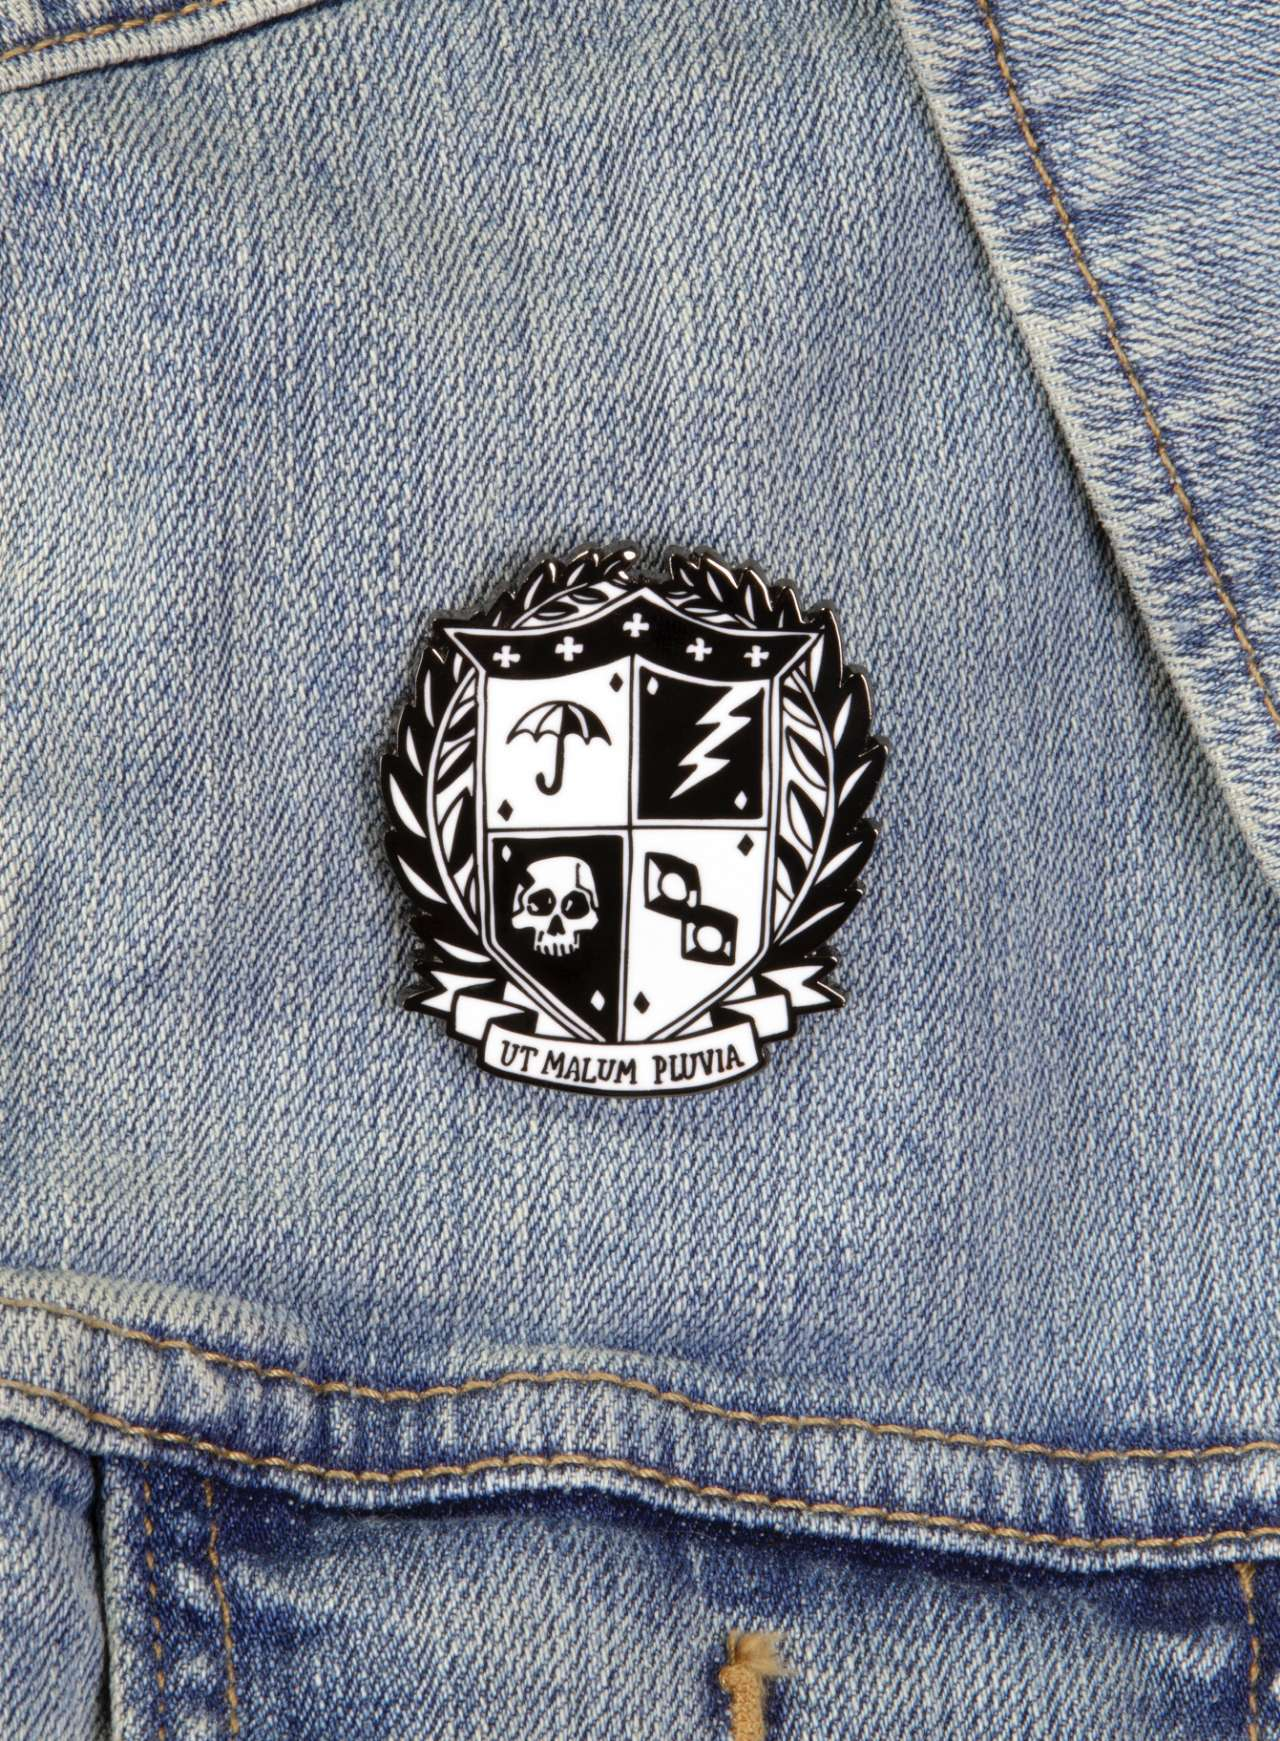 UA_ENAMEL_PIN_PHOTO_02